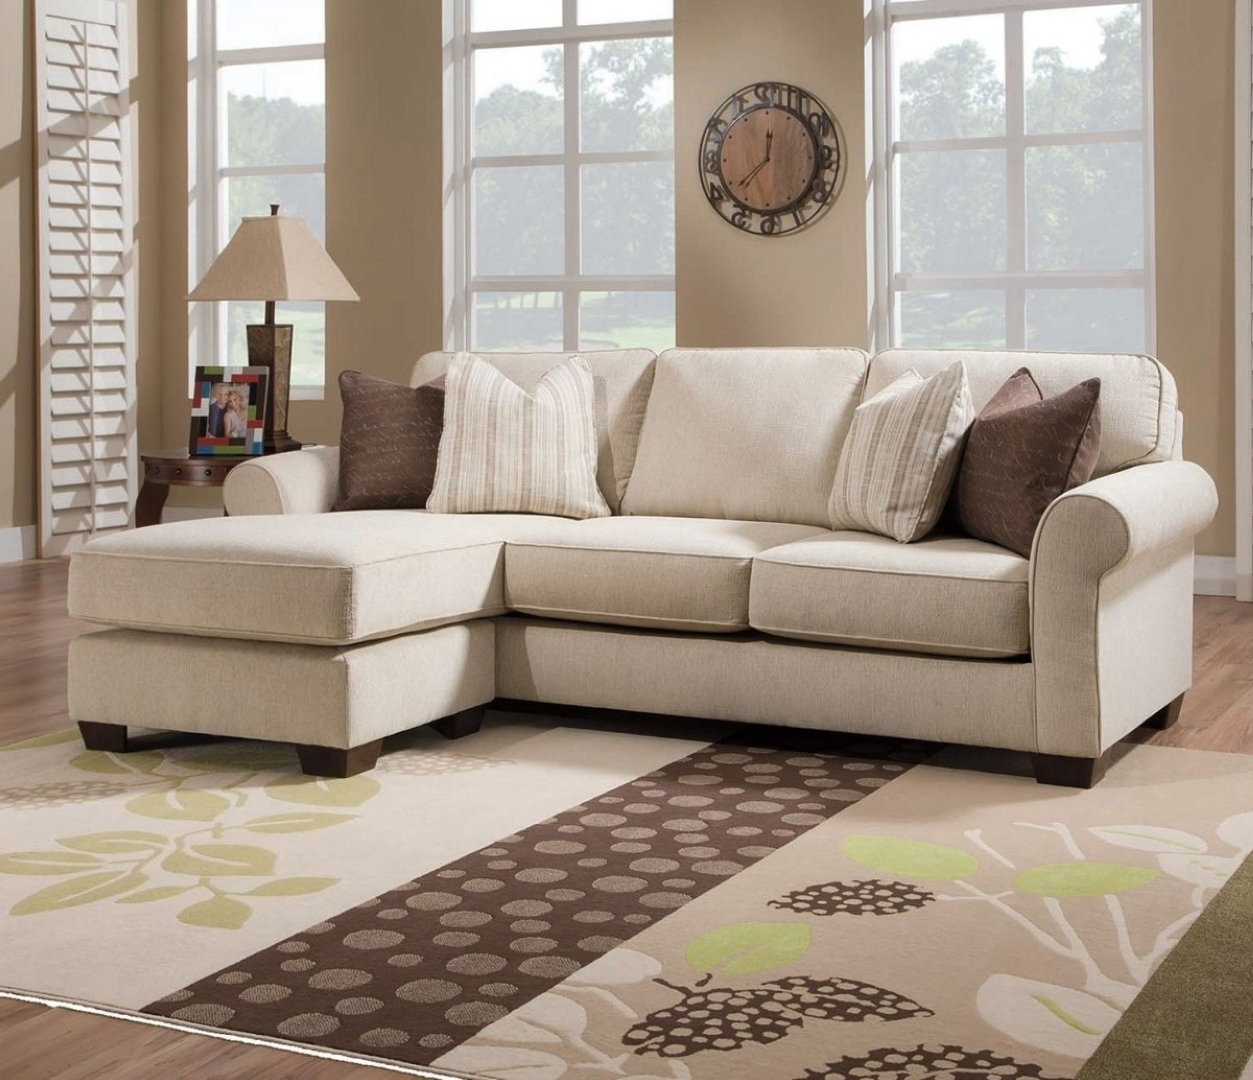 Popular Canada Sectional Sofas For Small Spaces For Small Modern Sofa, Contemporary Sofas And Couches Small (View 9 of 15)